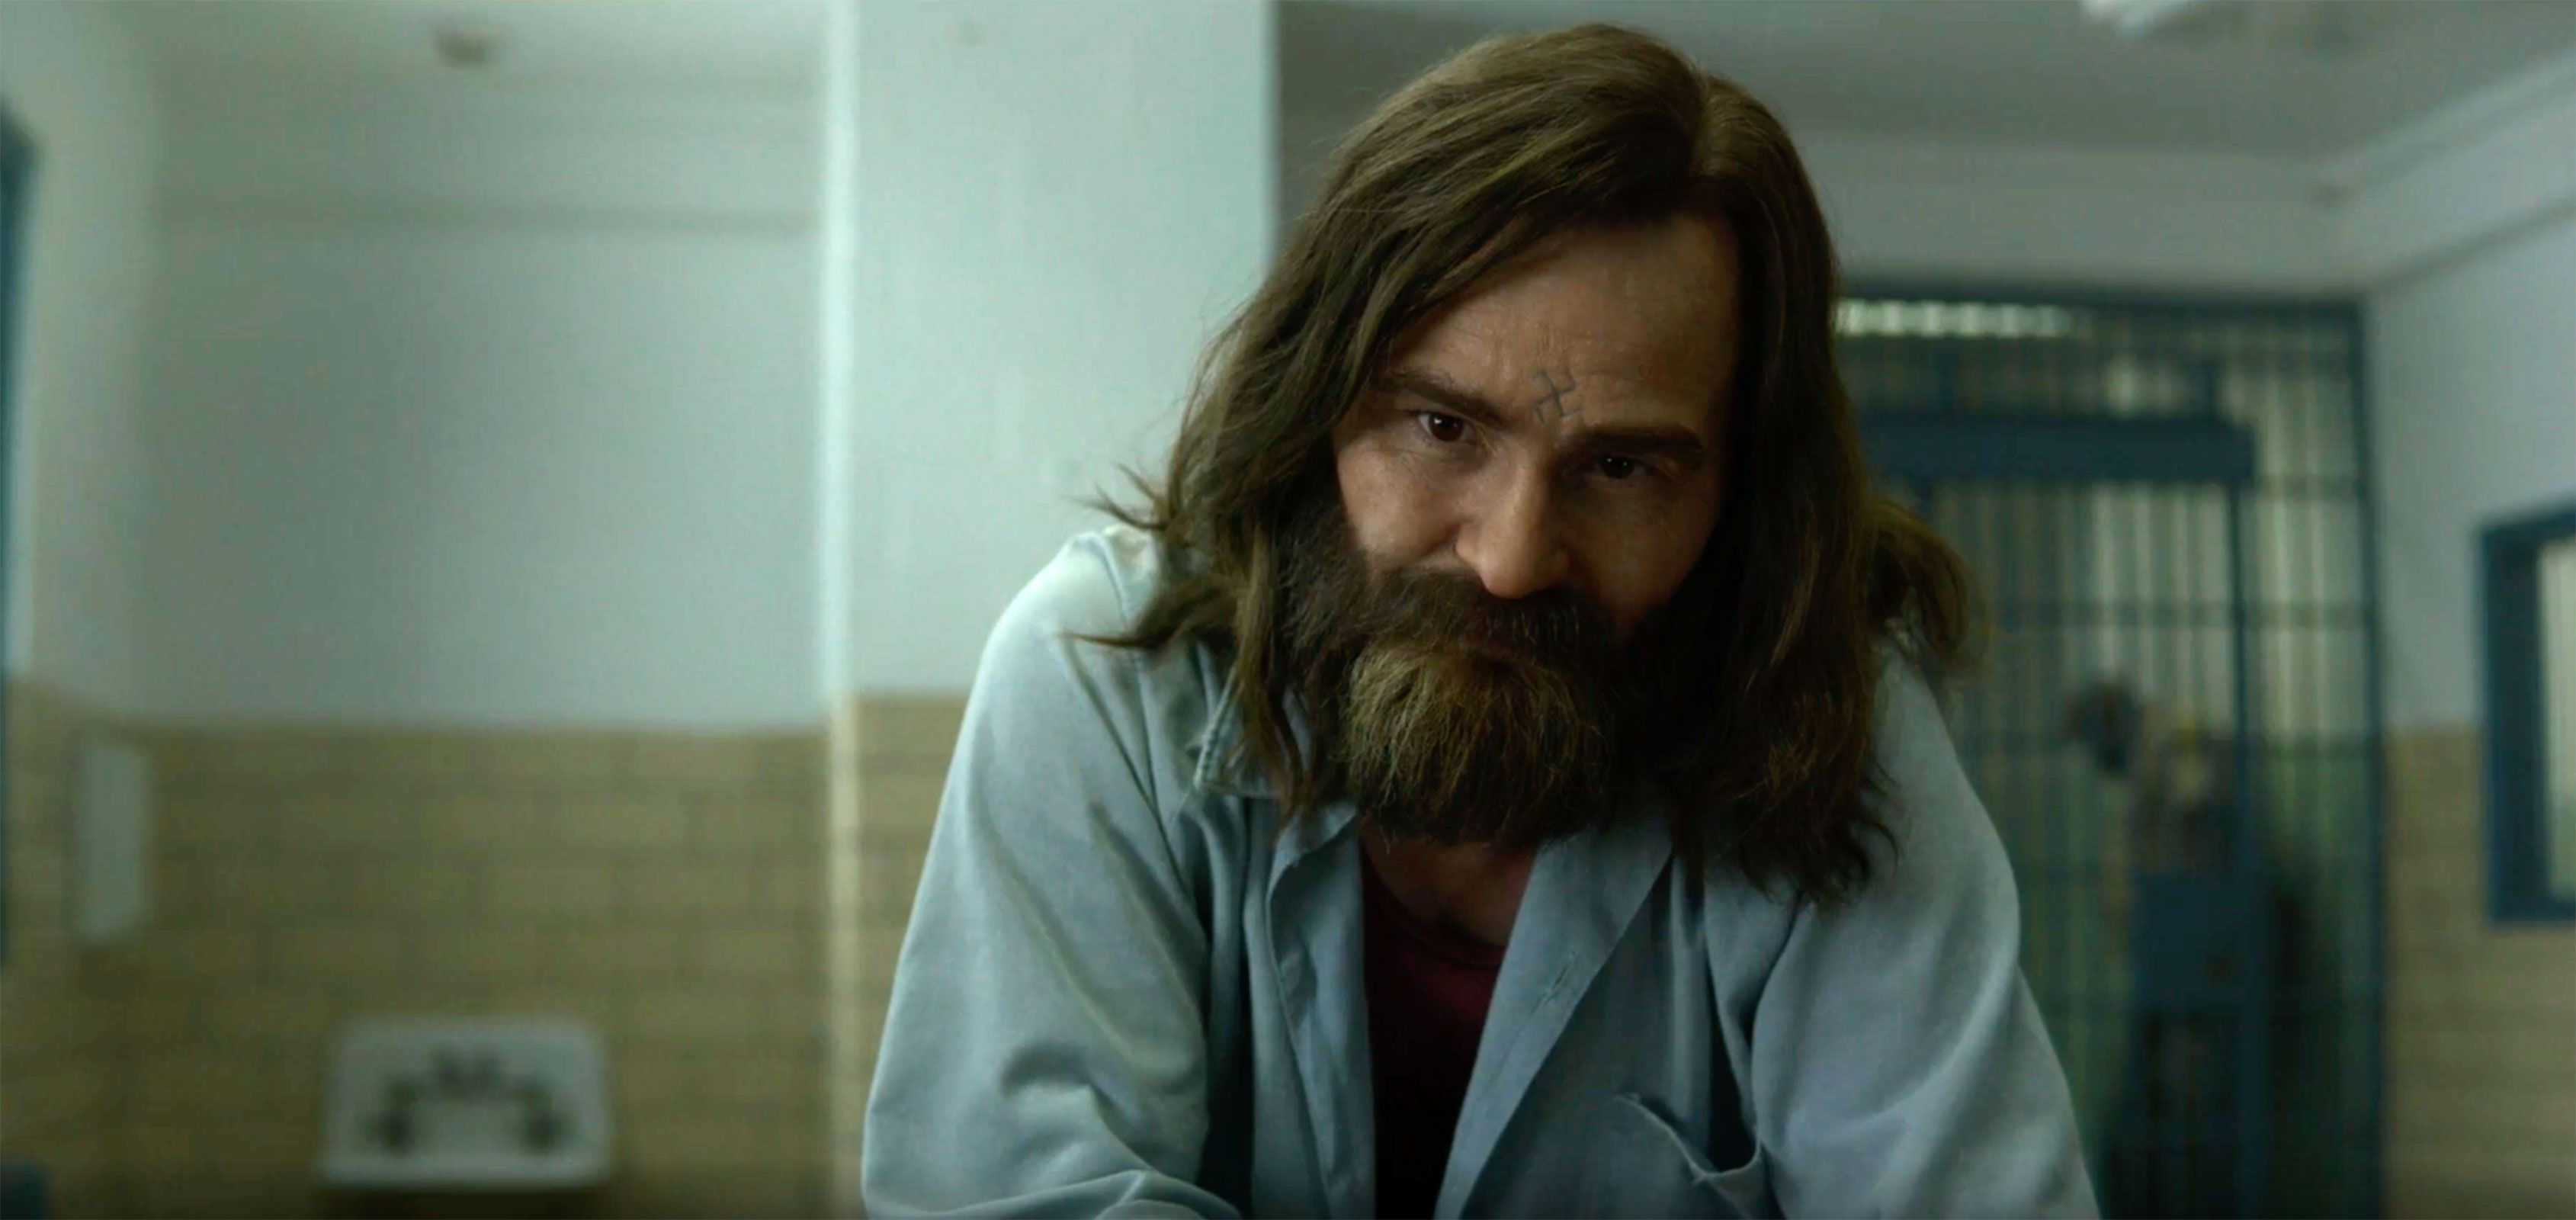 Image may contain: The Manson family, Charles Manson, Mindhunter, season two, Netflix, story, Manson, real life, prison, dead, now, young, latest, what happened, what they did, murders, victims, killing, story, Beard, Face, Person, Human